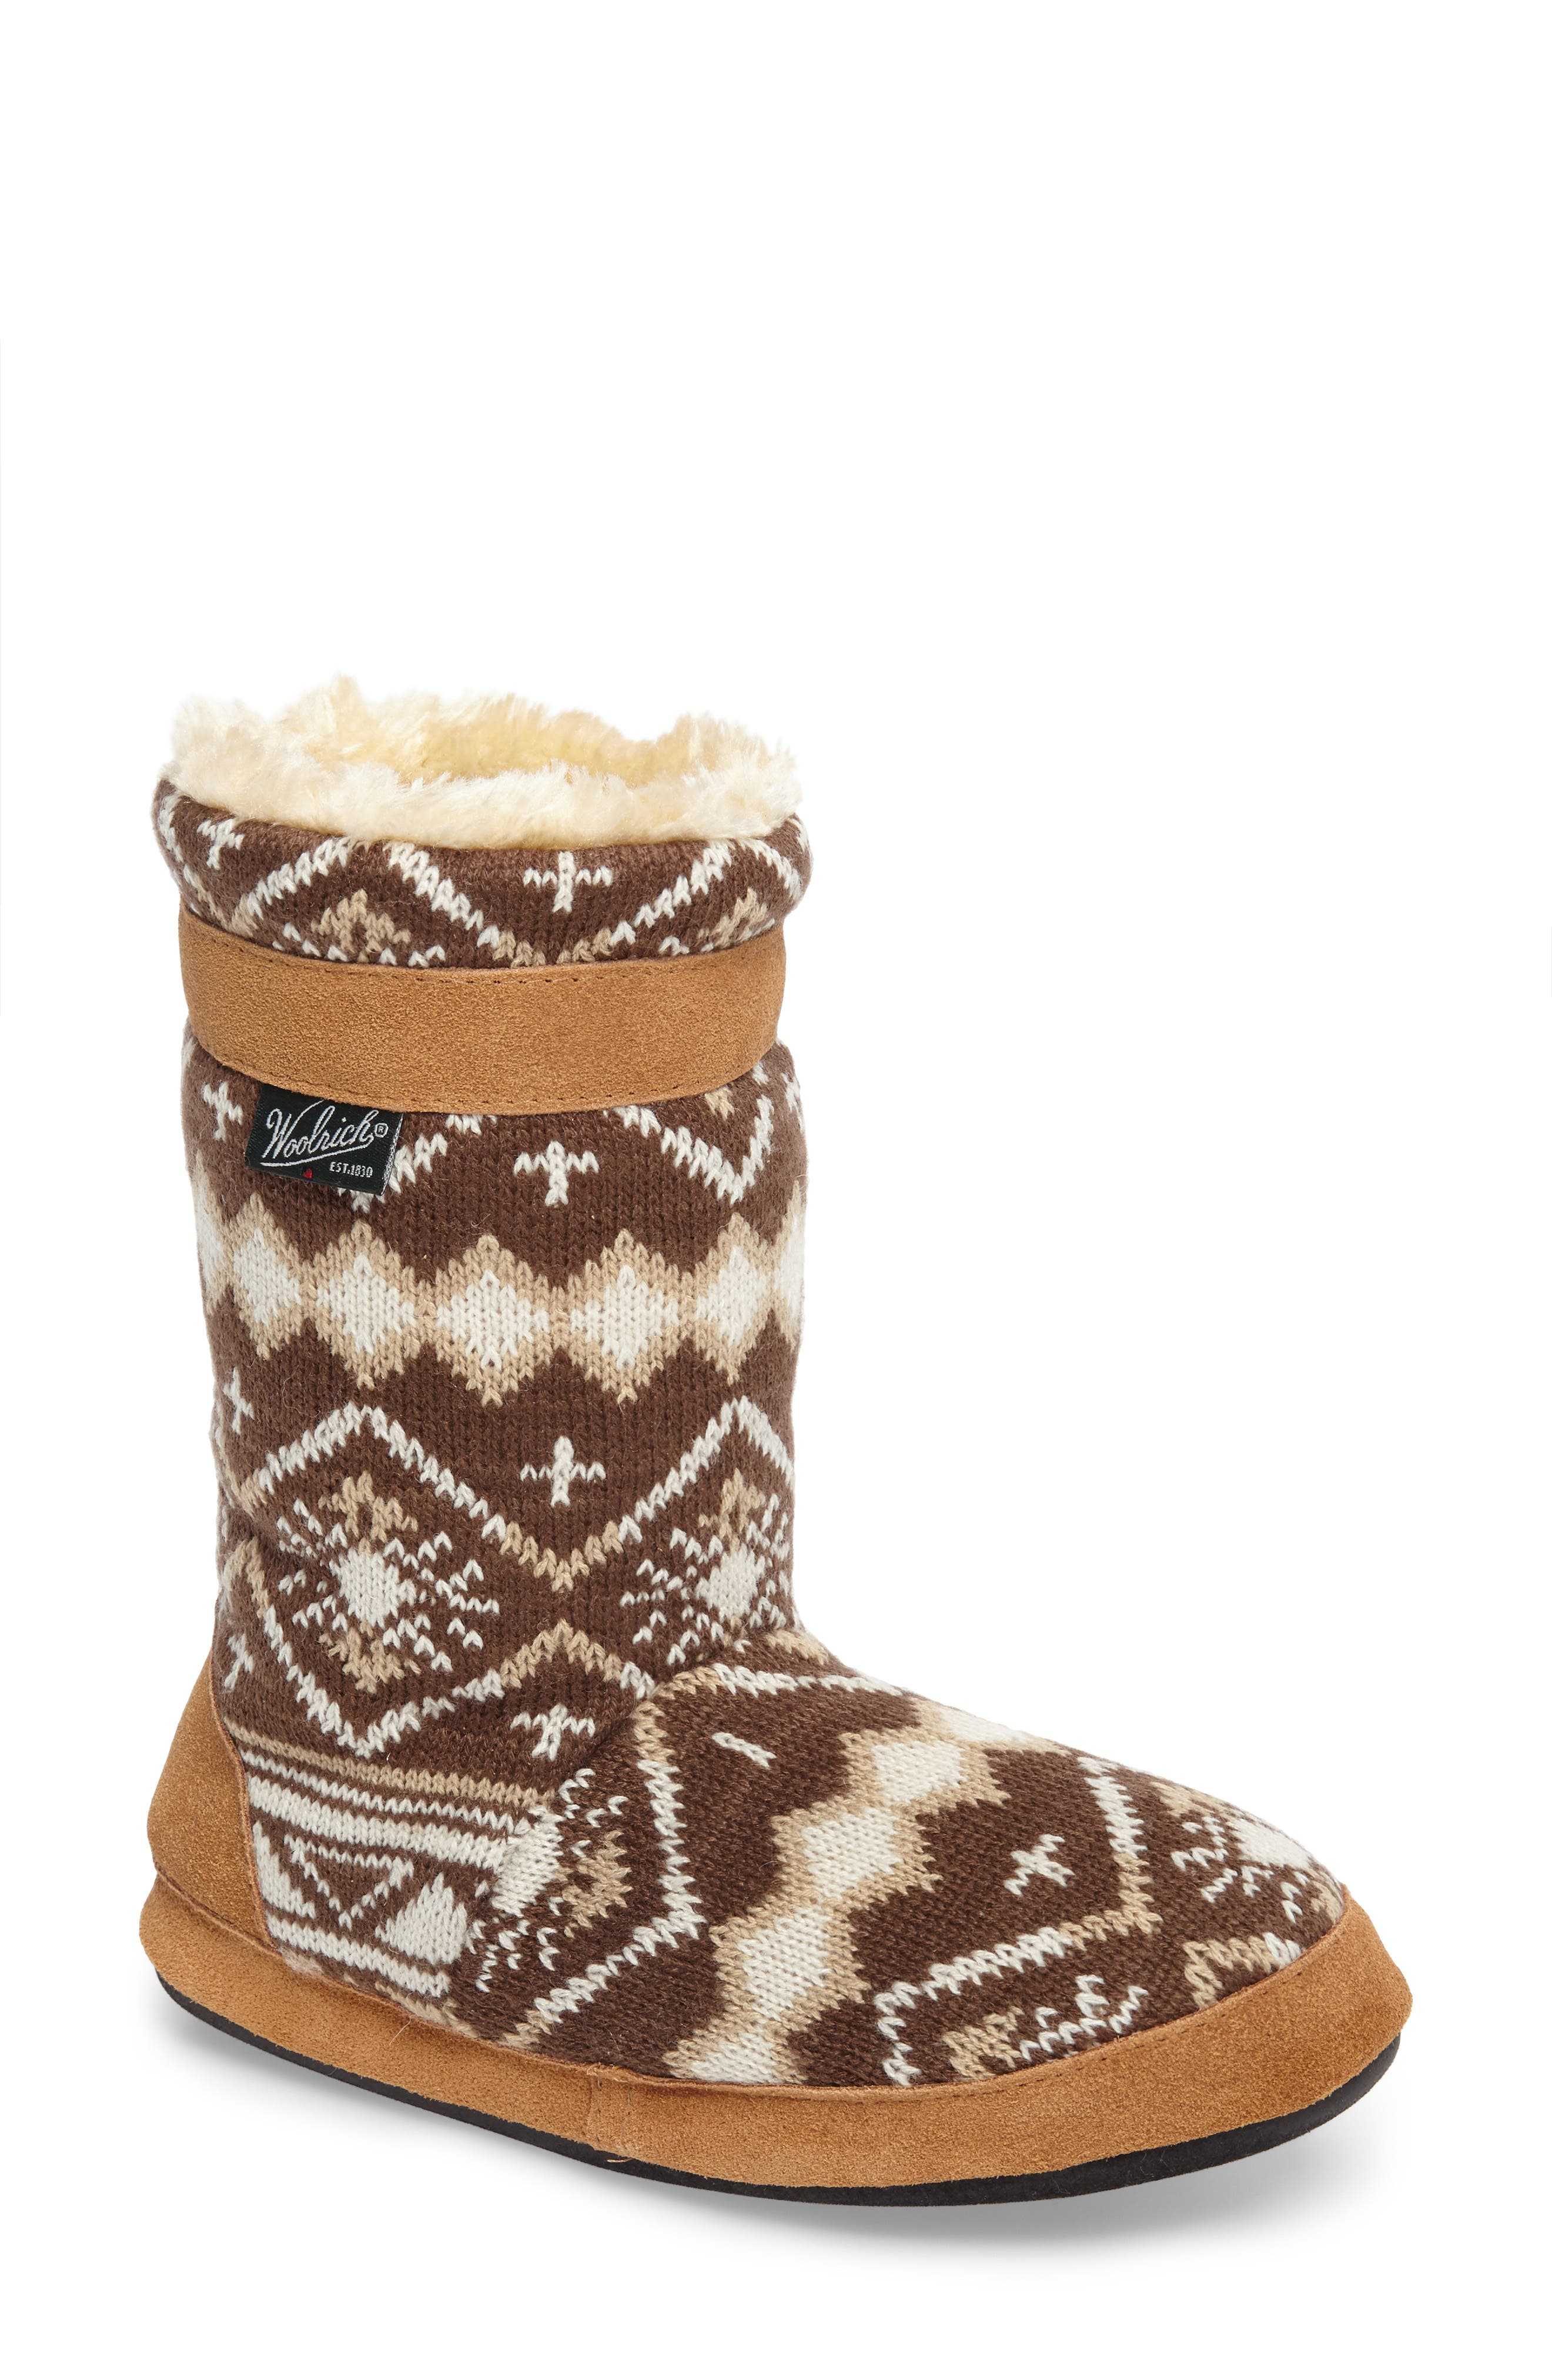 Woolrich Whitecap Knit Slipper Bootie (Women)